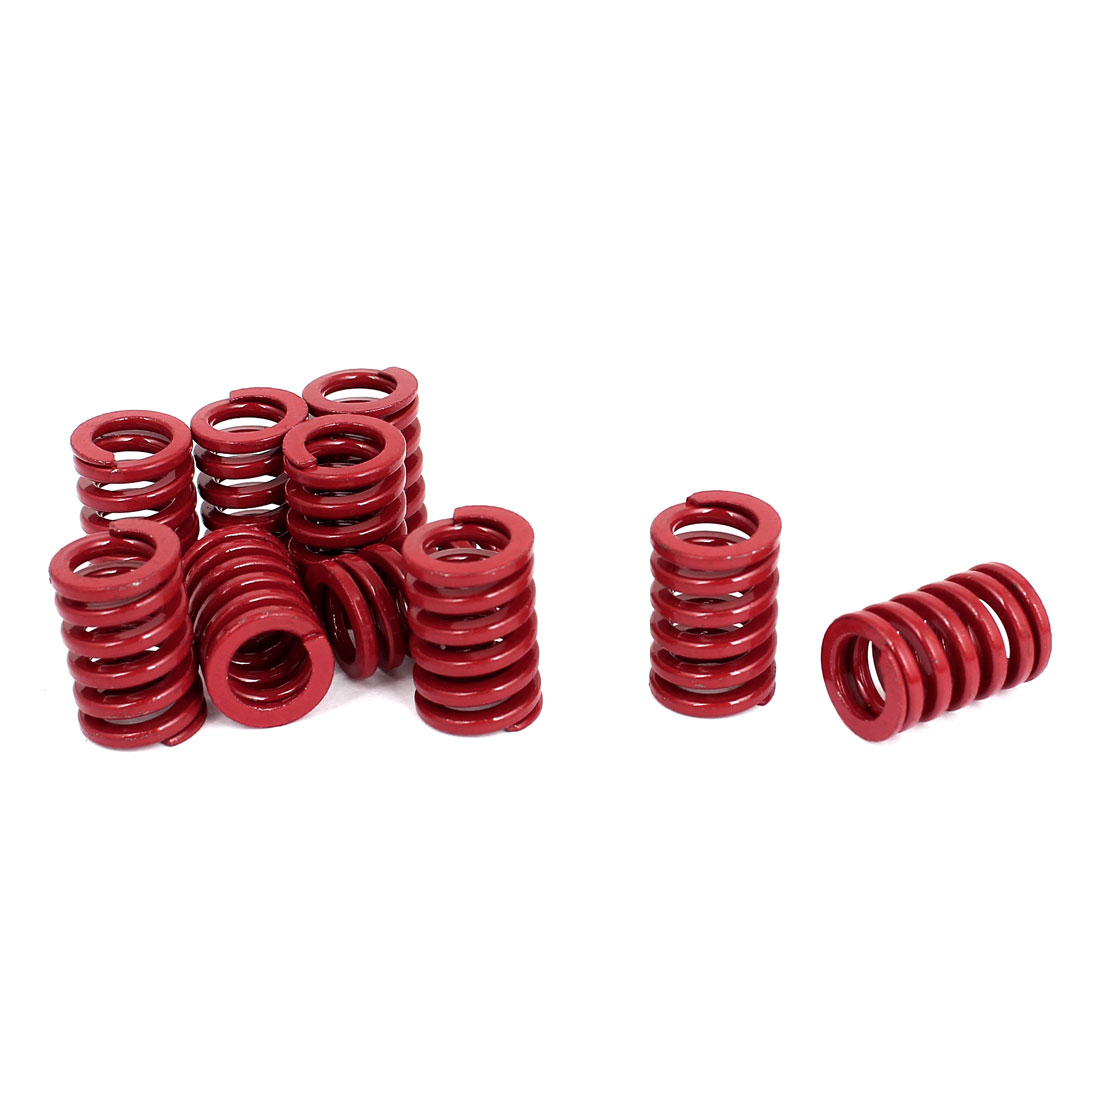 14mm OD 20mm Long Medium Load Stamping Compression Mold Die Spring Red 10pcs